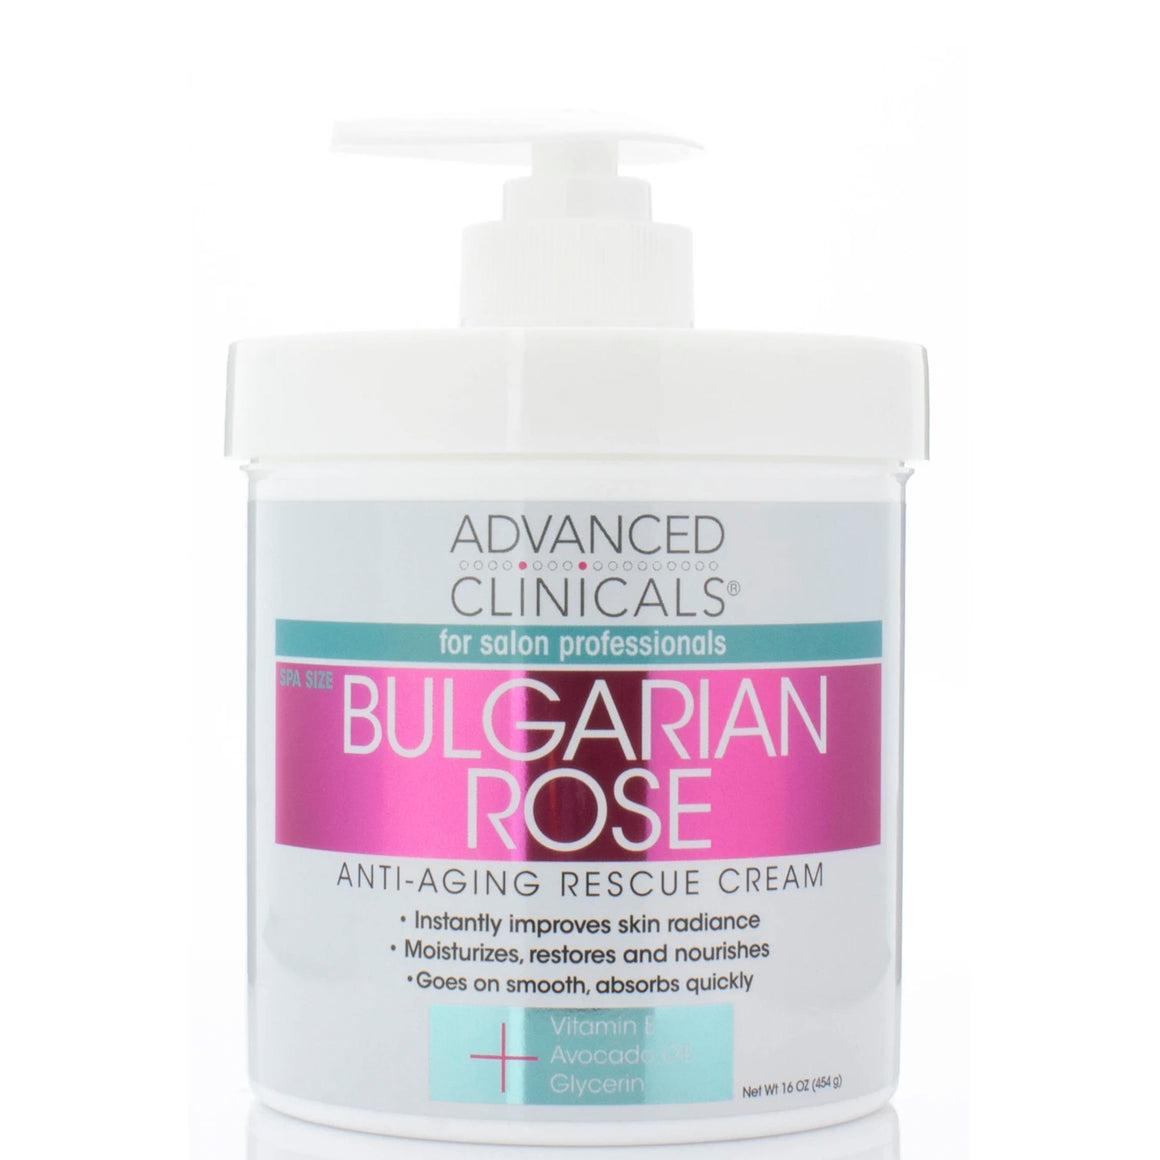 spa size bulgarian rose anti-aging rescue cream, improves skin radiance with vitamin e and avocado oil